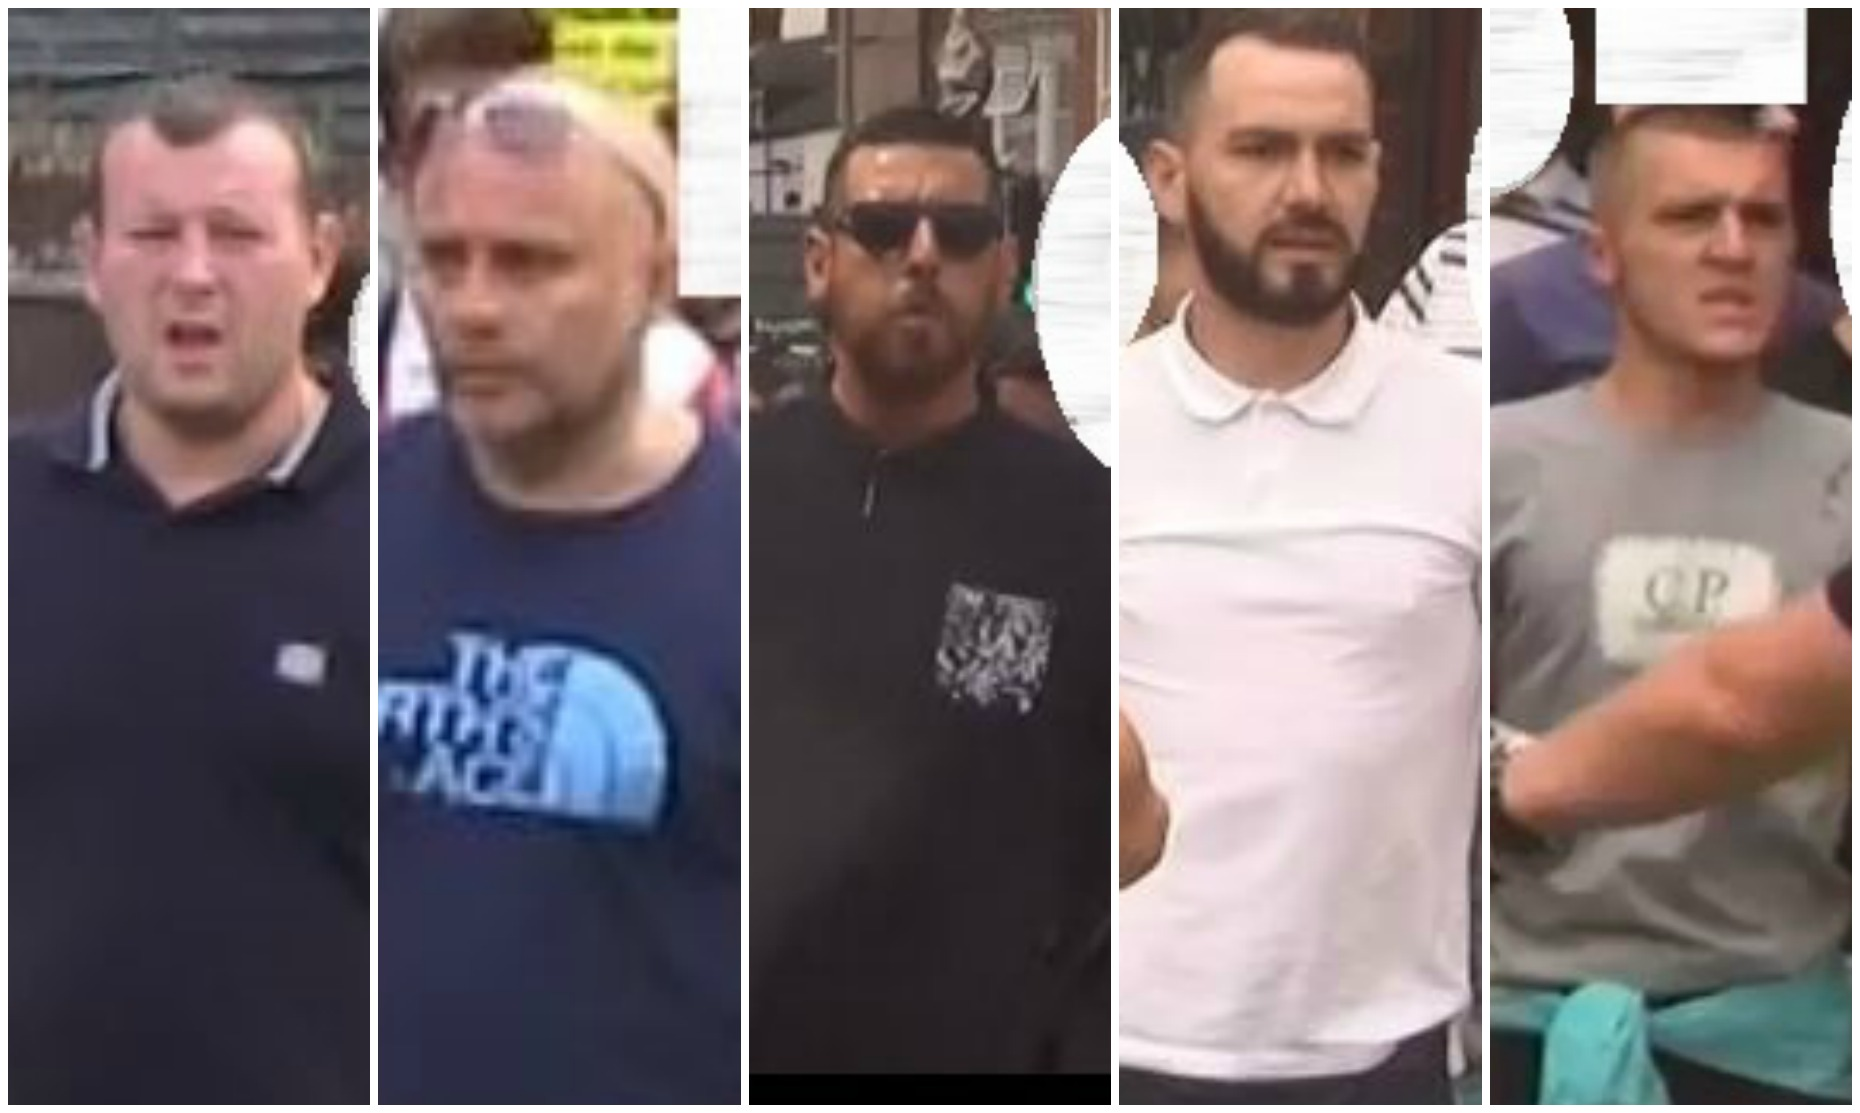 Do you recognise any of the men pictured? Call 101.